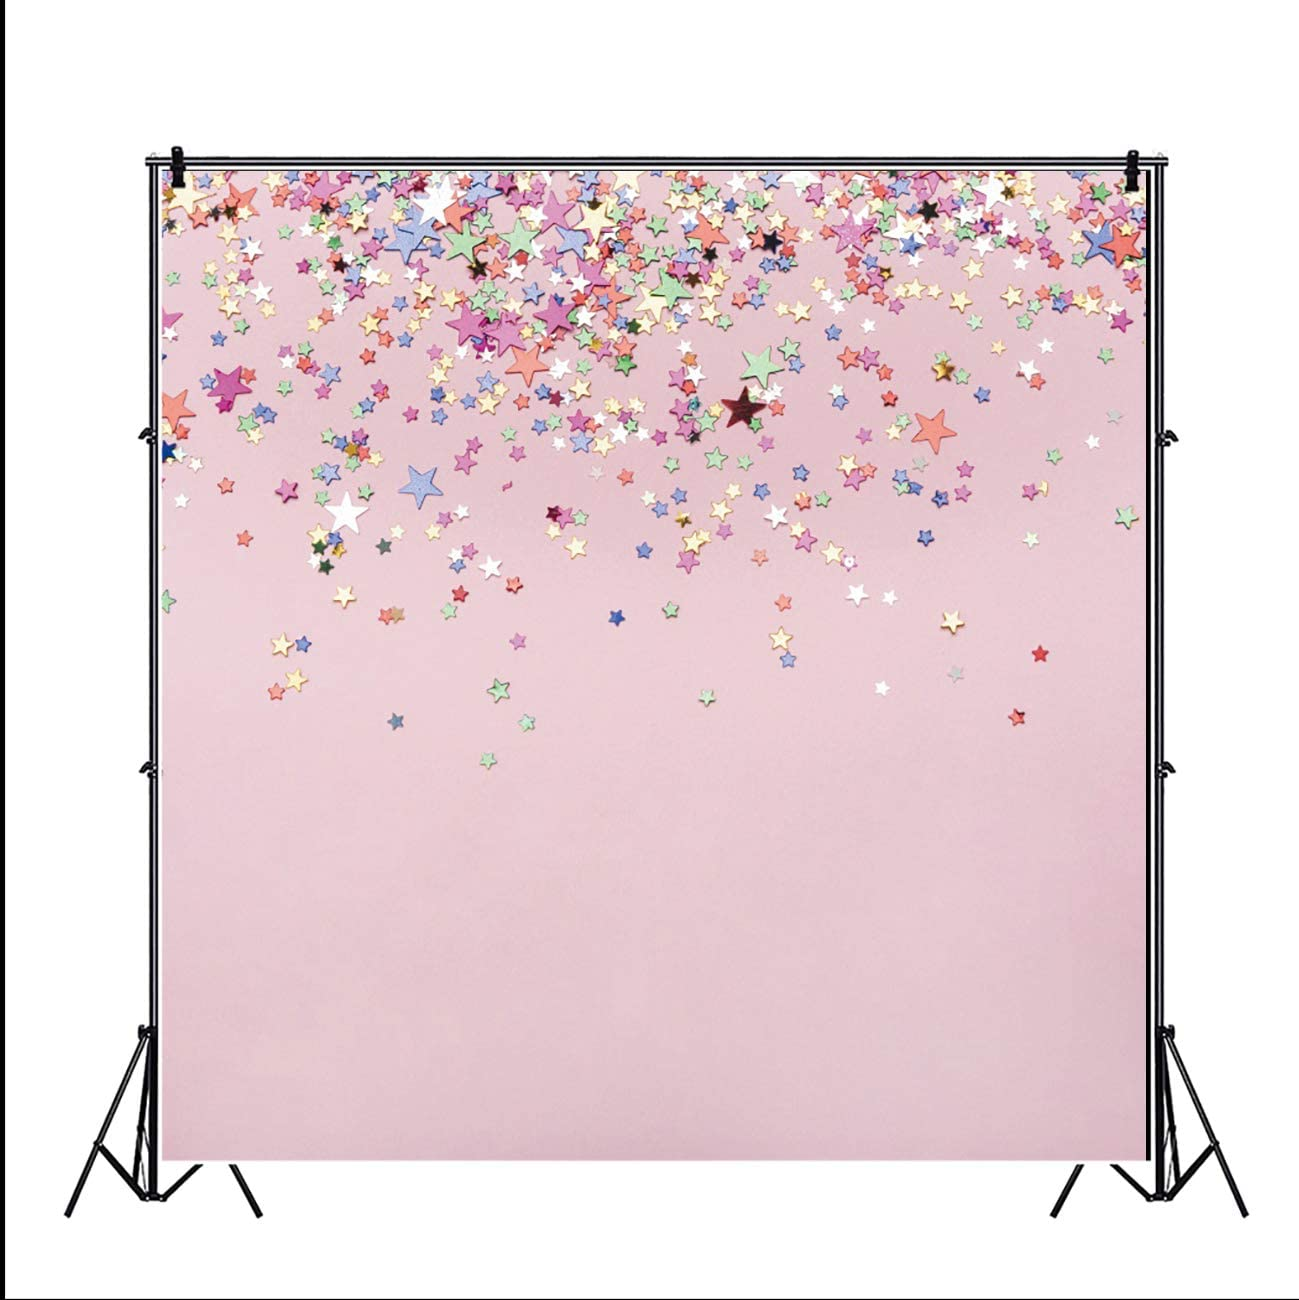 YEELE Pink Photography Background 6.5x6.5ft Colorful Stars Scattered Backdrop Baby Shower Background Girl Birthday Party Quinceanera Photo Shoot Booth Digital Wallpaper